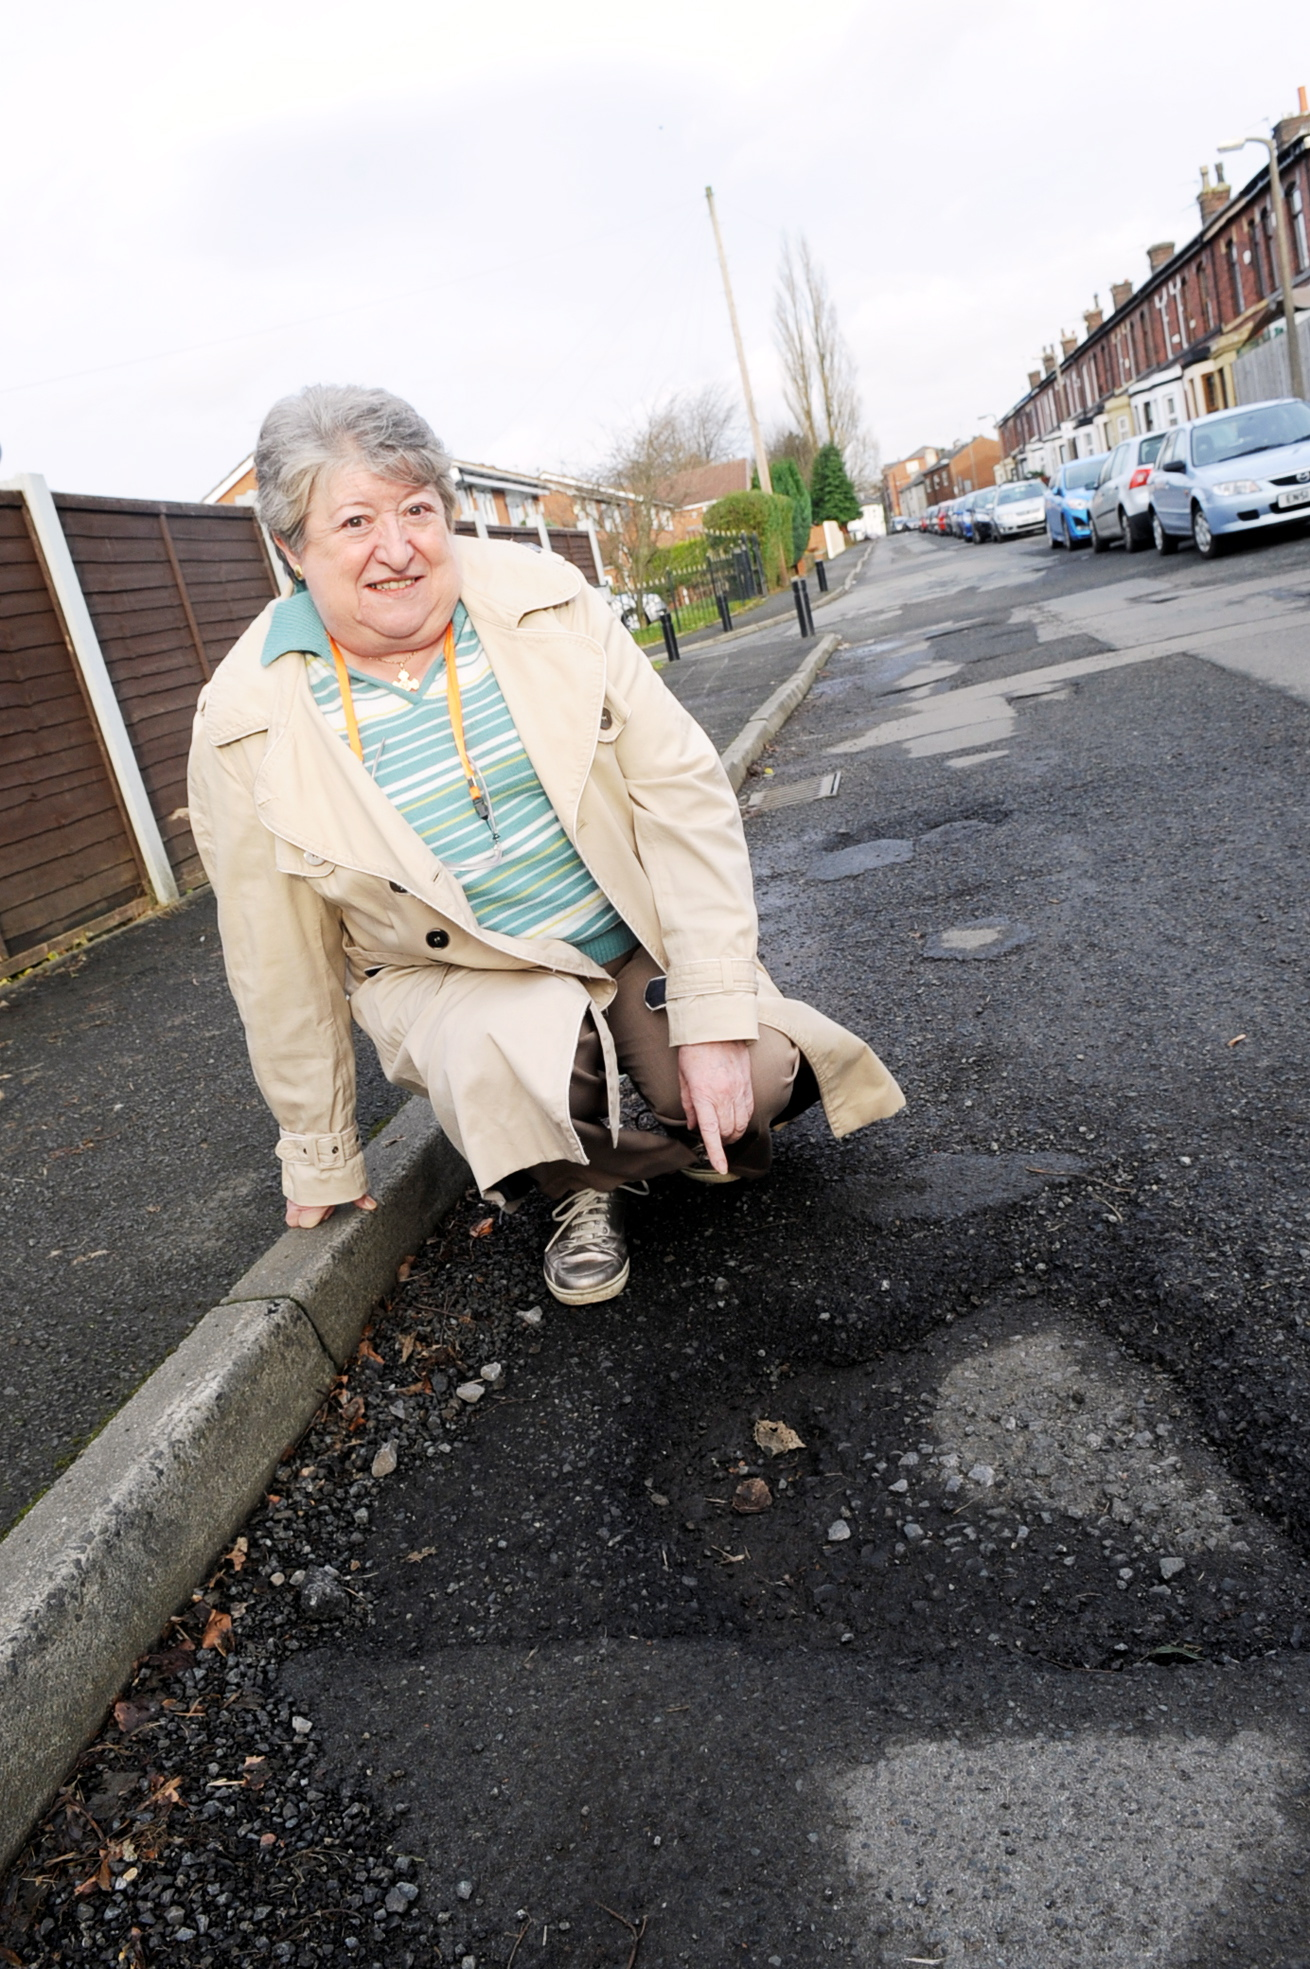 Good news for residents after pothole repairs stoppe